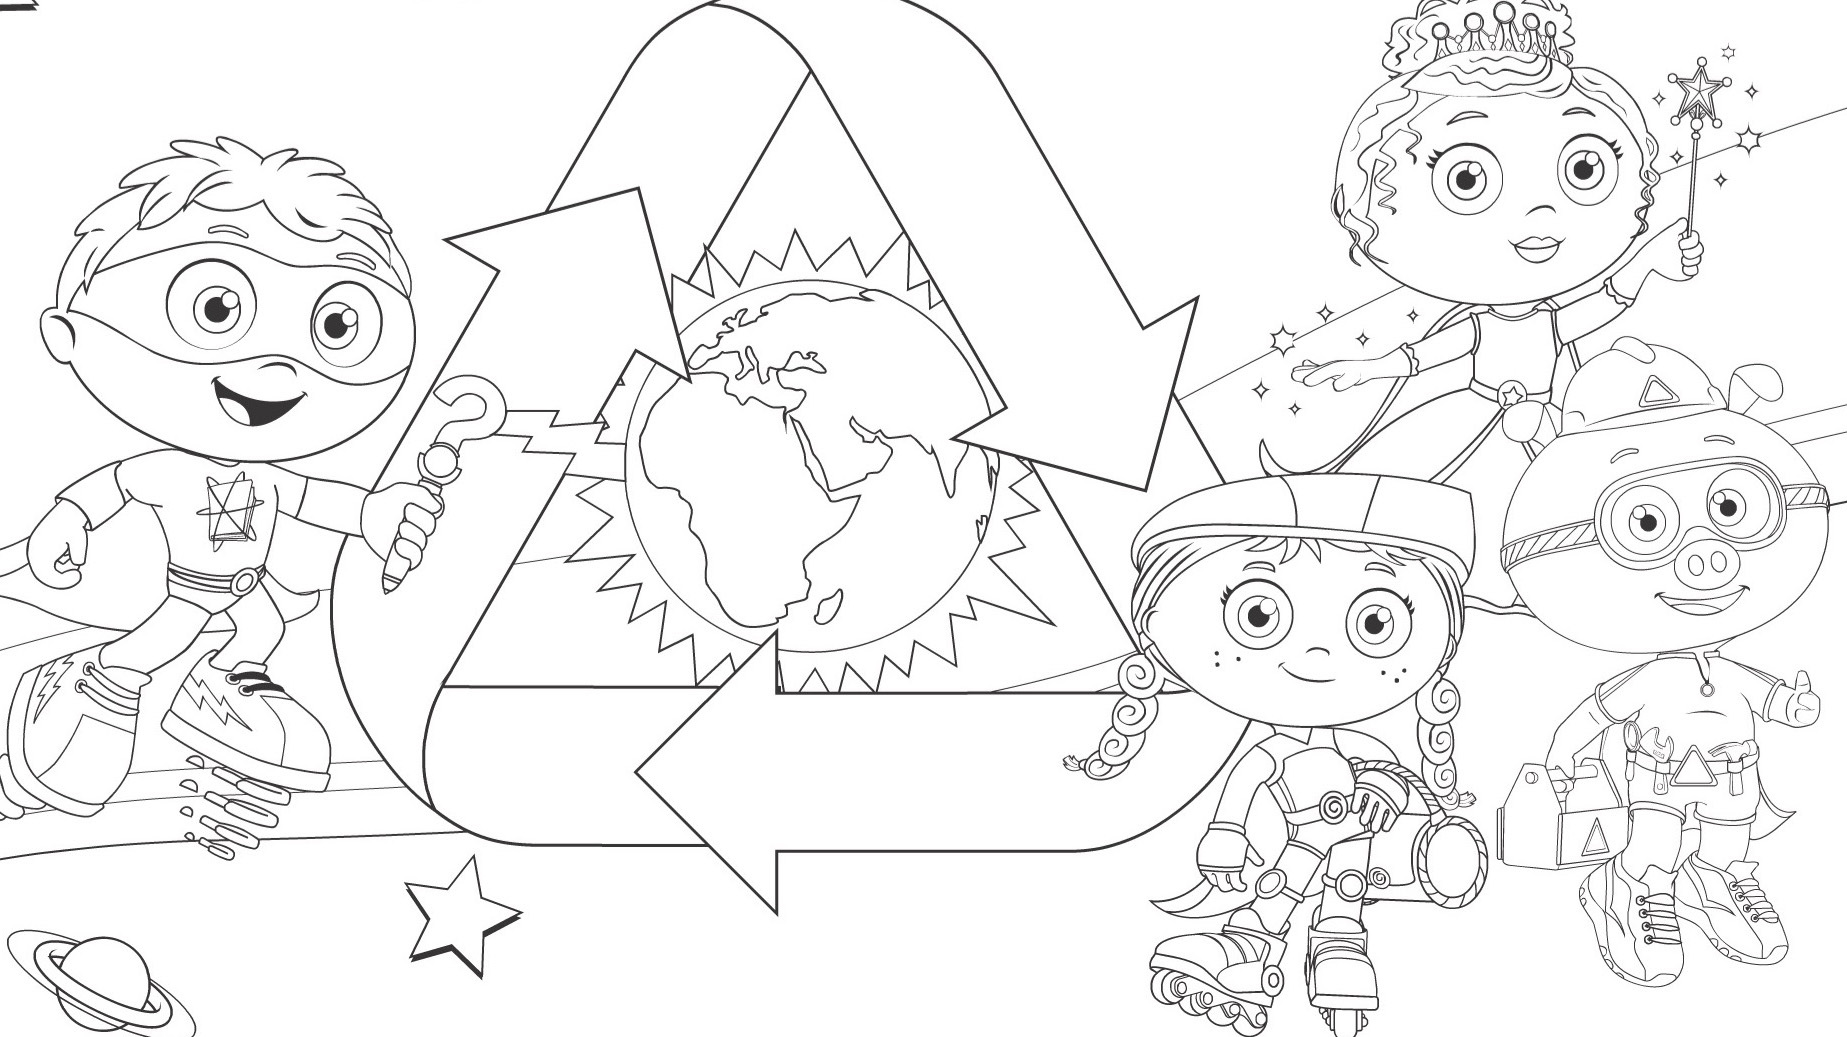 Earth Day Coloring Page Kids Coloring Pages Pbs Kids For Parents